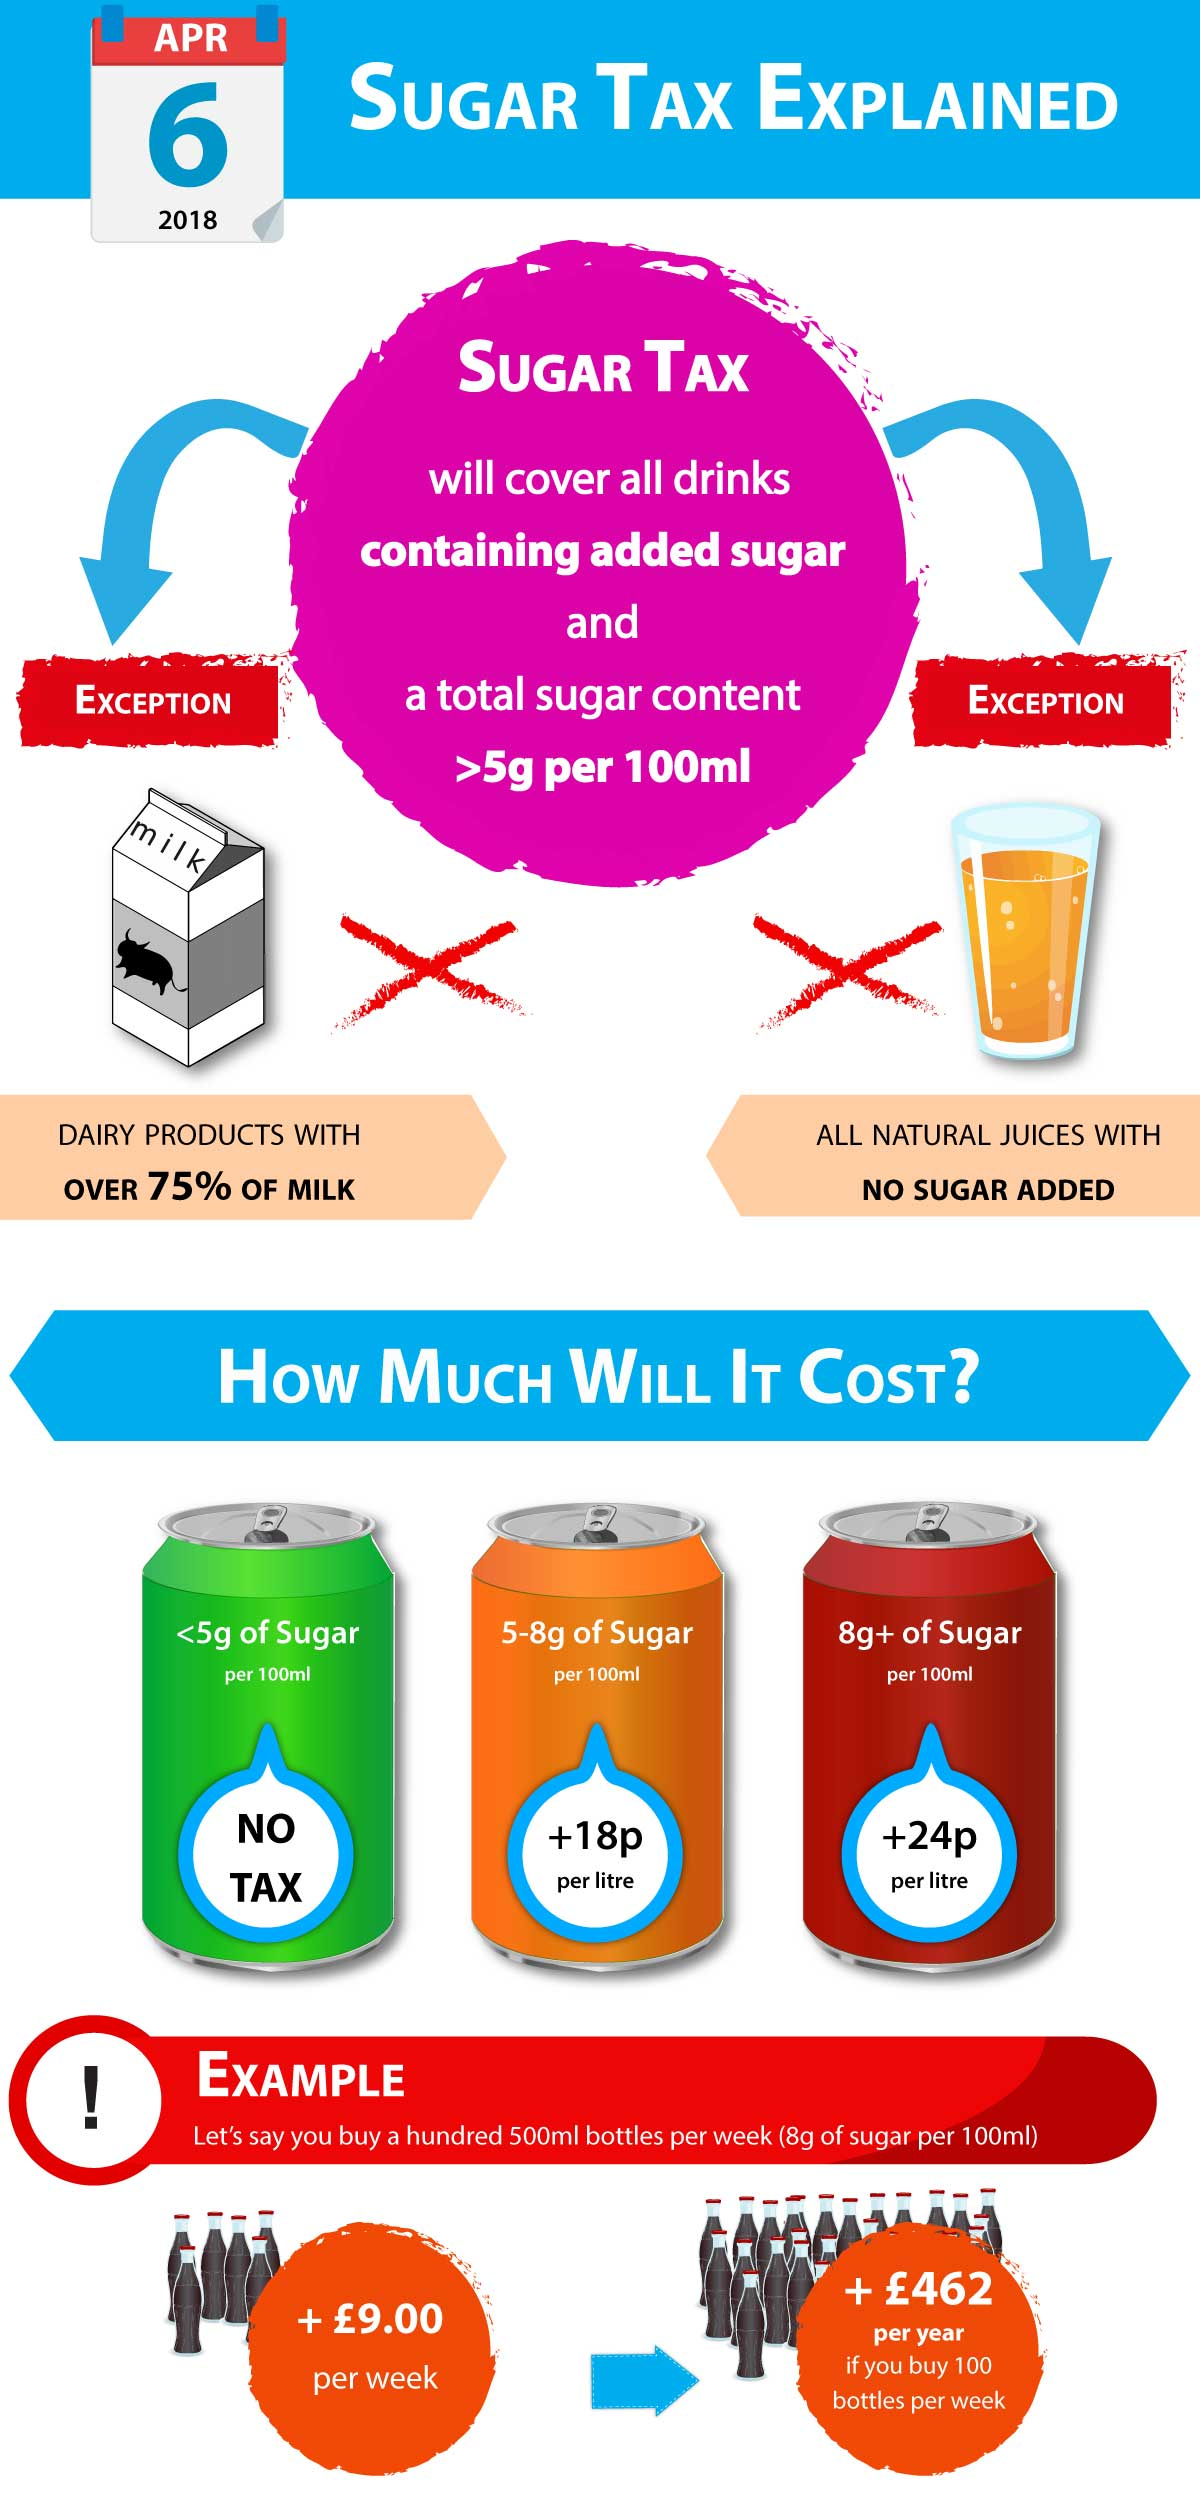 sugar-tax-explained-infographic-zepbrook-refreshments-offices-london